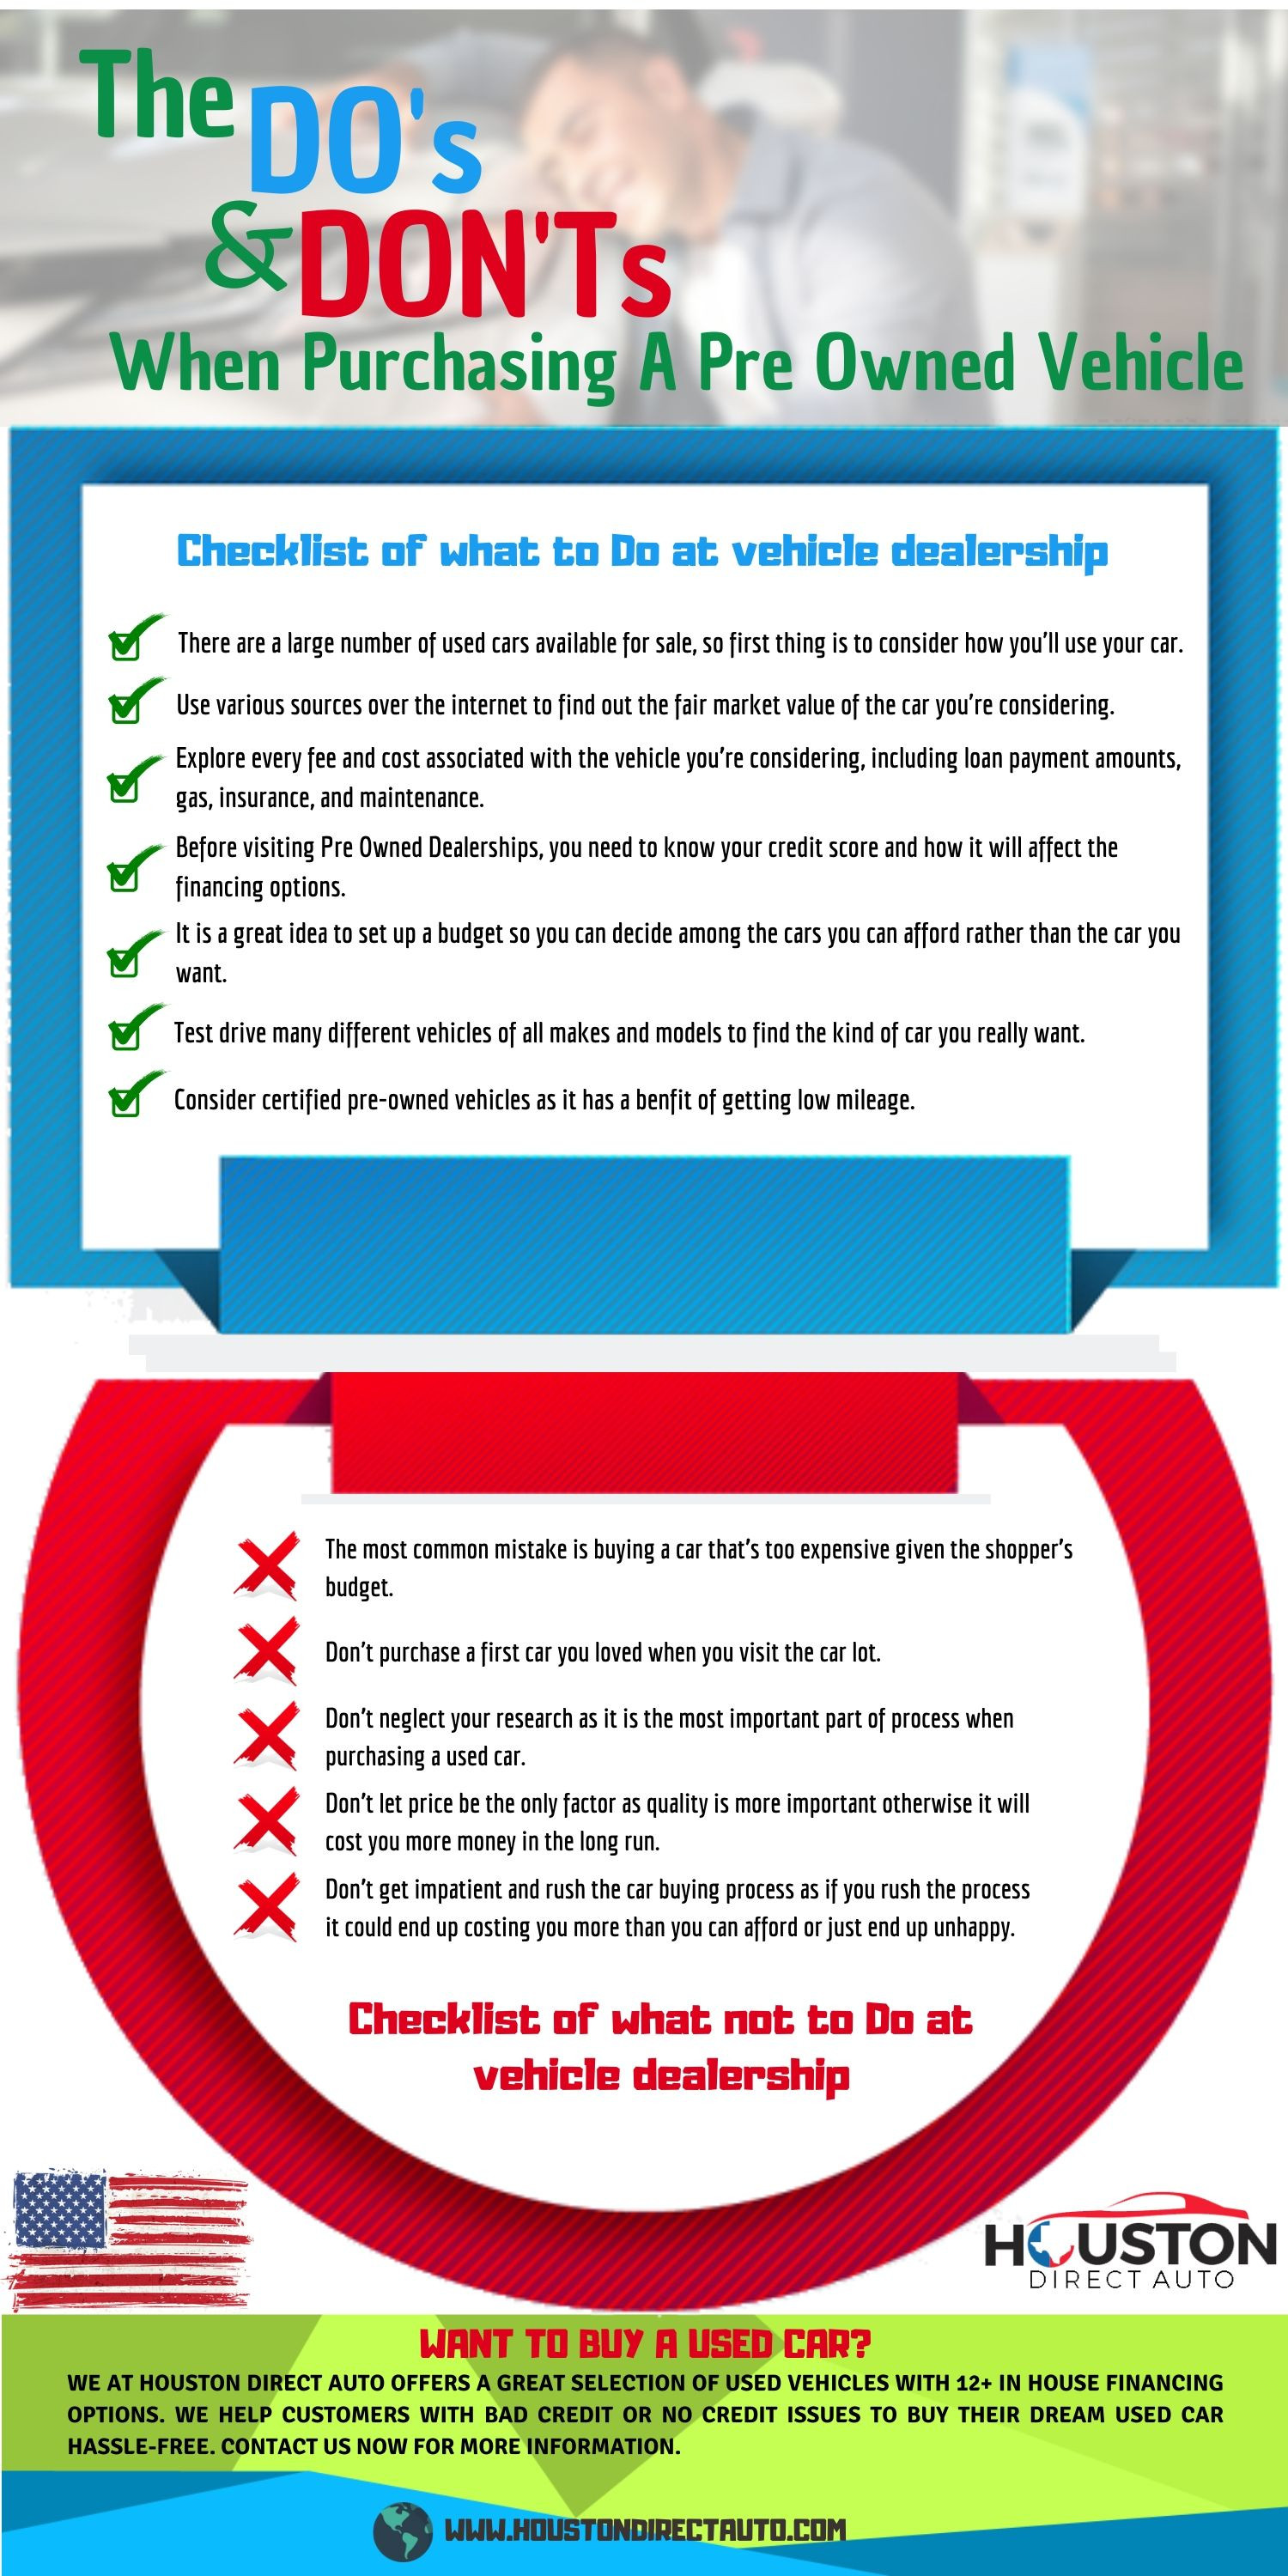 The Do's And Don'ts When Purchasing A Pre Owned Vehicle Infographic